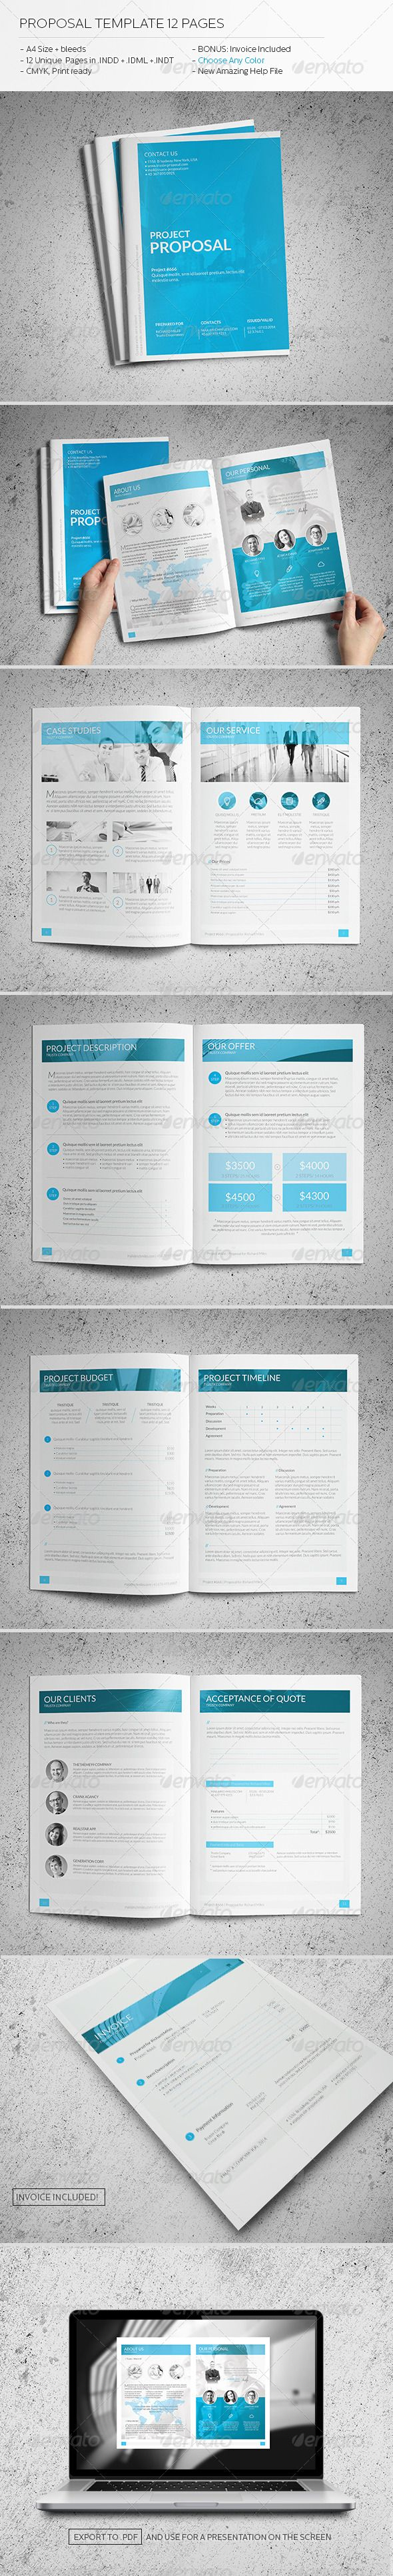 Commercial Proposal Format Gorgeous Commercial Proposal Template #12  Branding  Pinterest  Proposal .